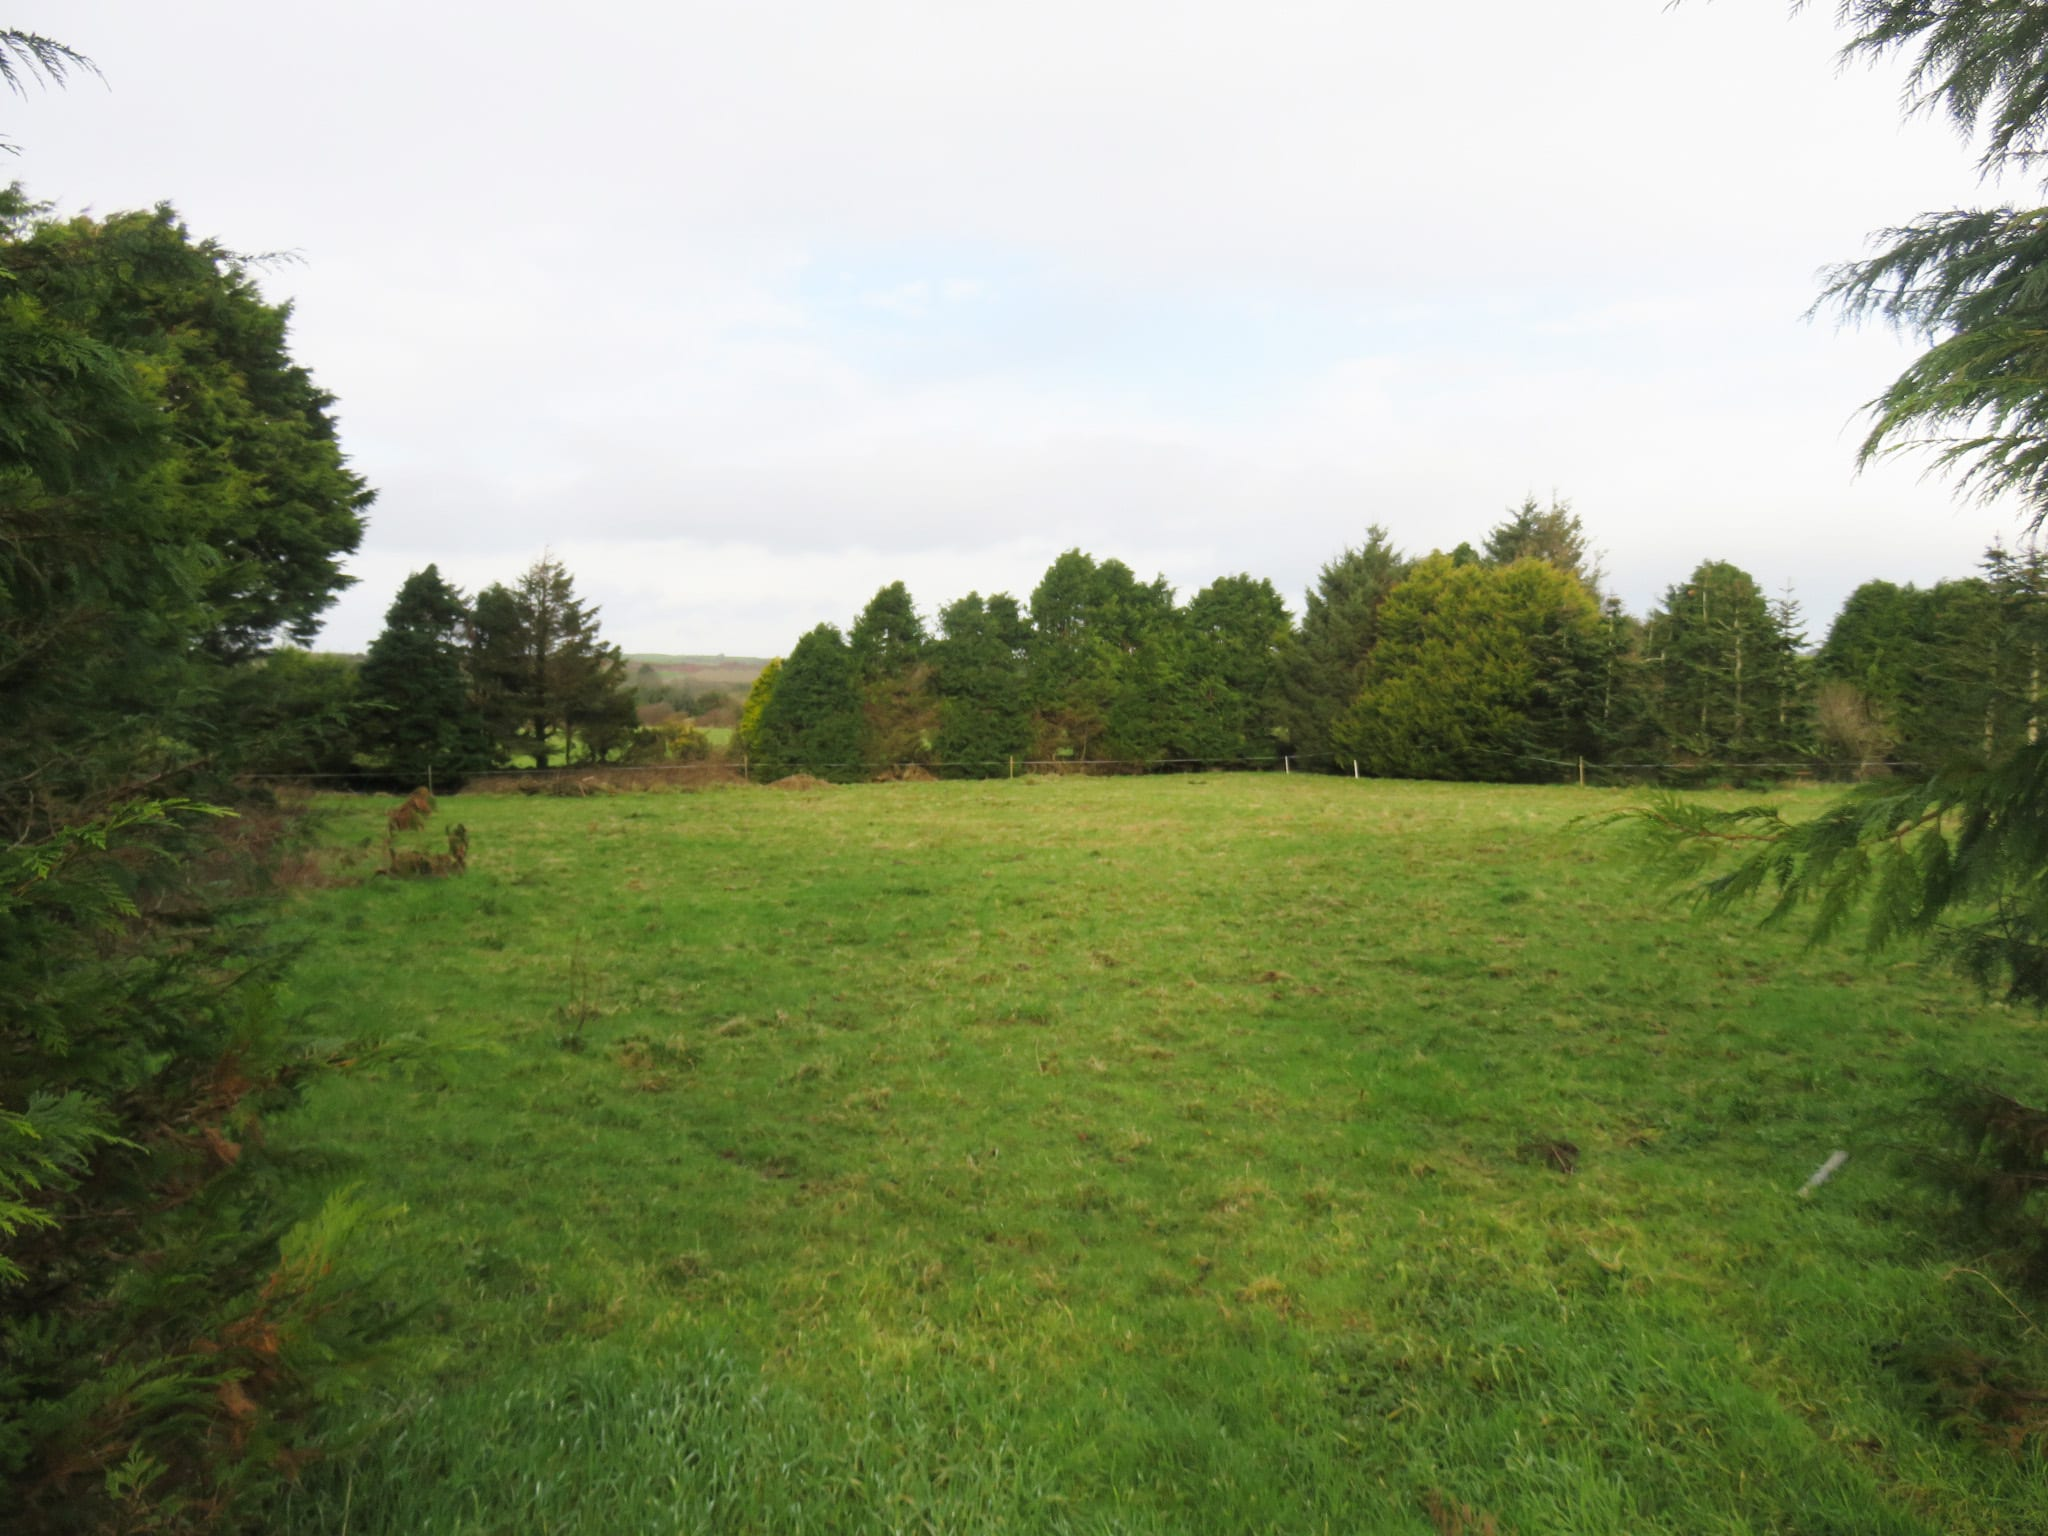 Second Image of Site